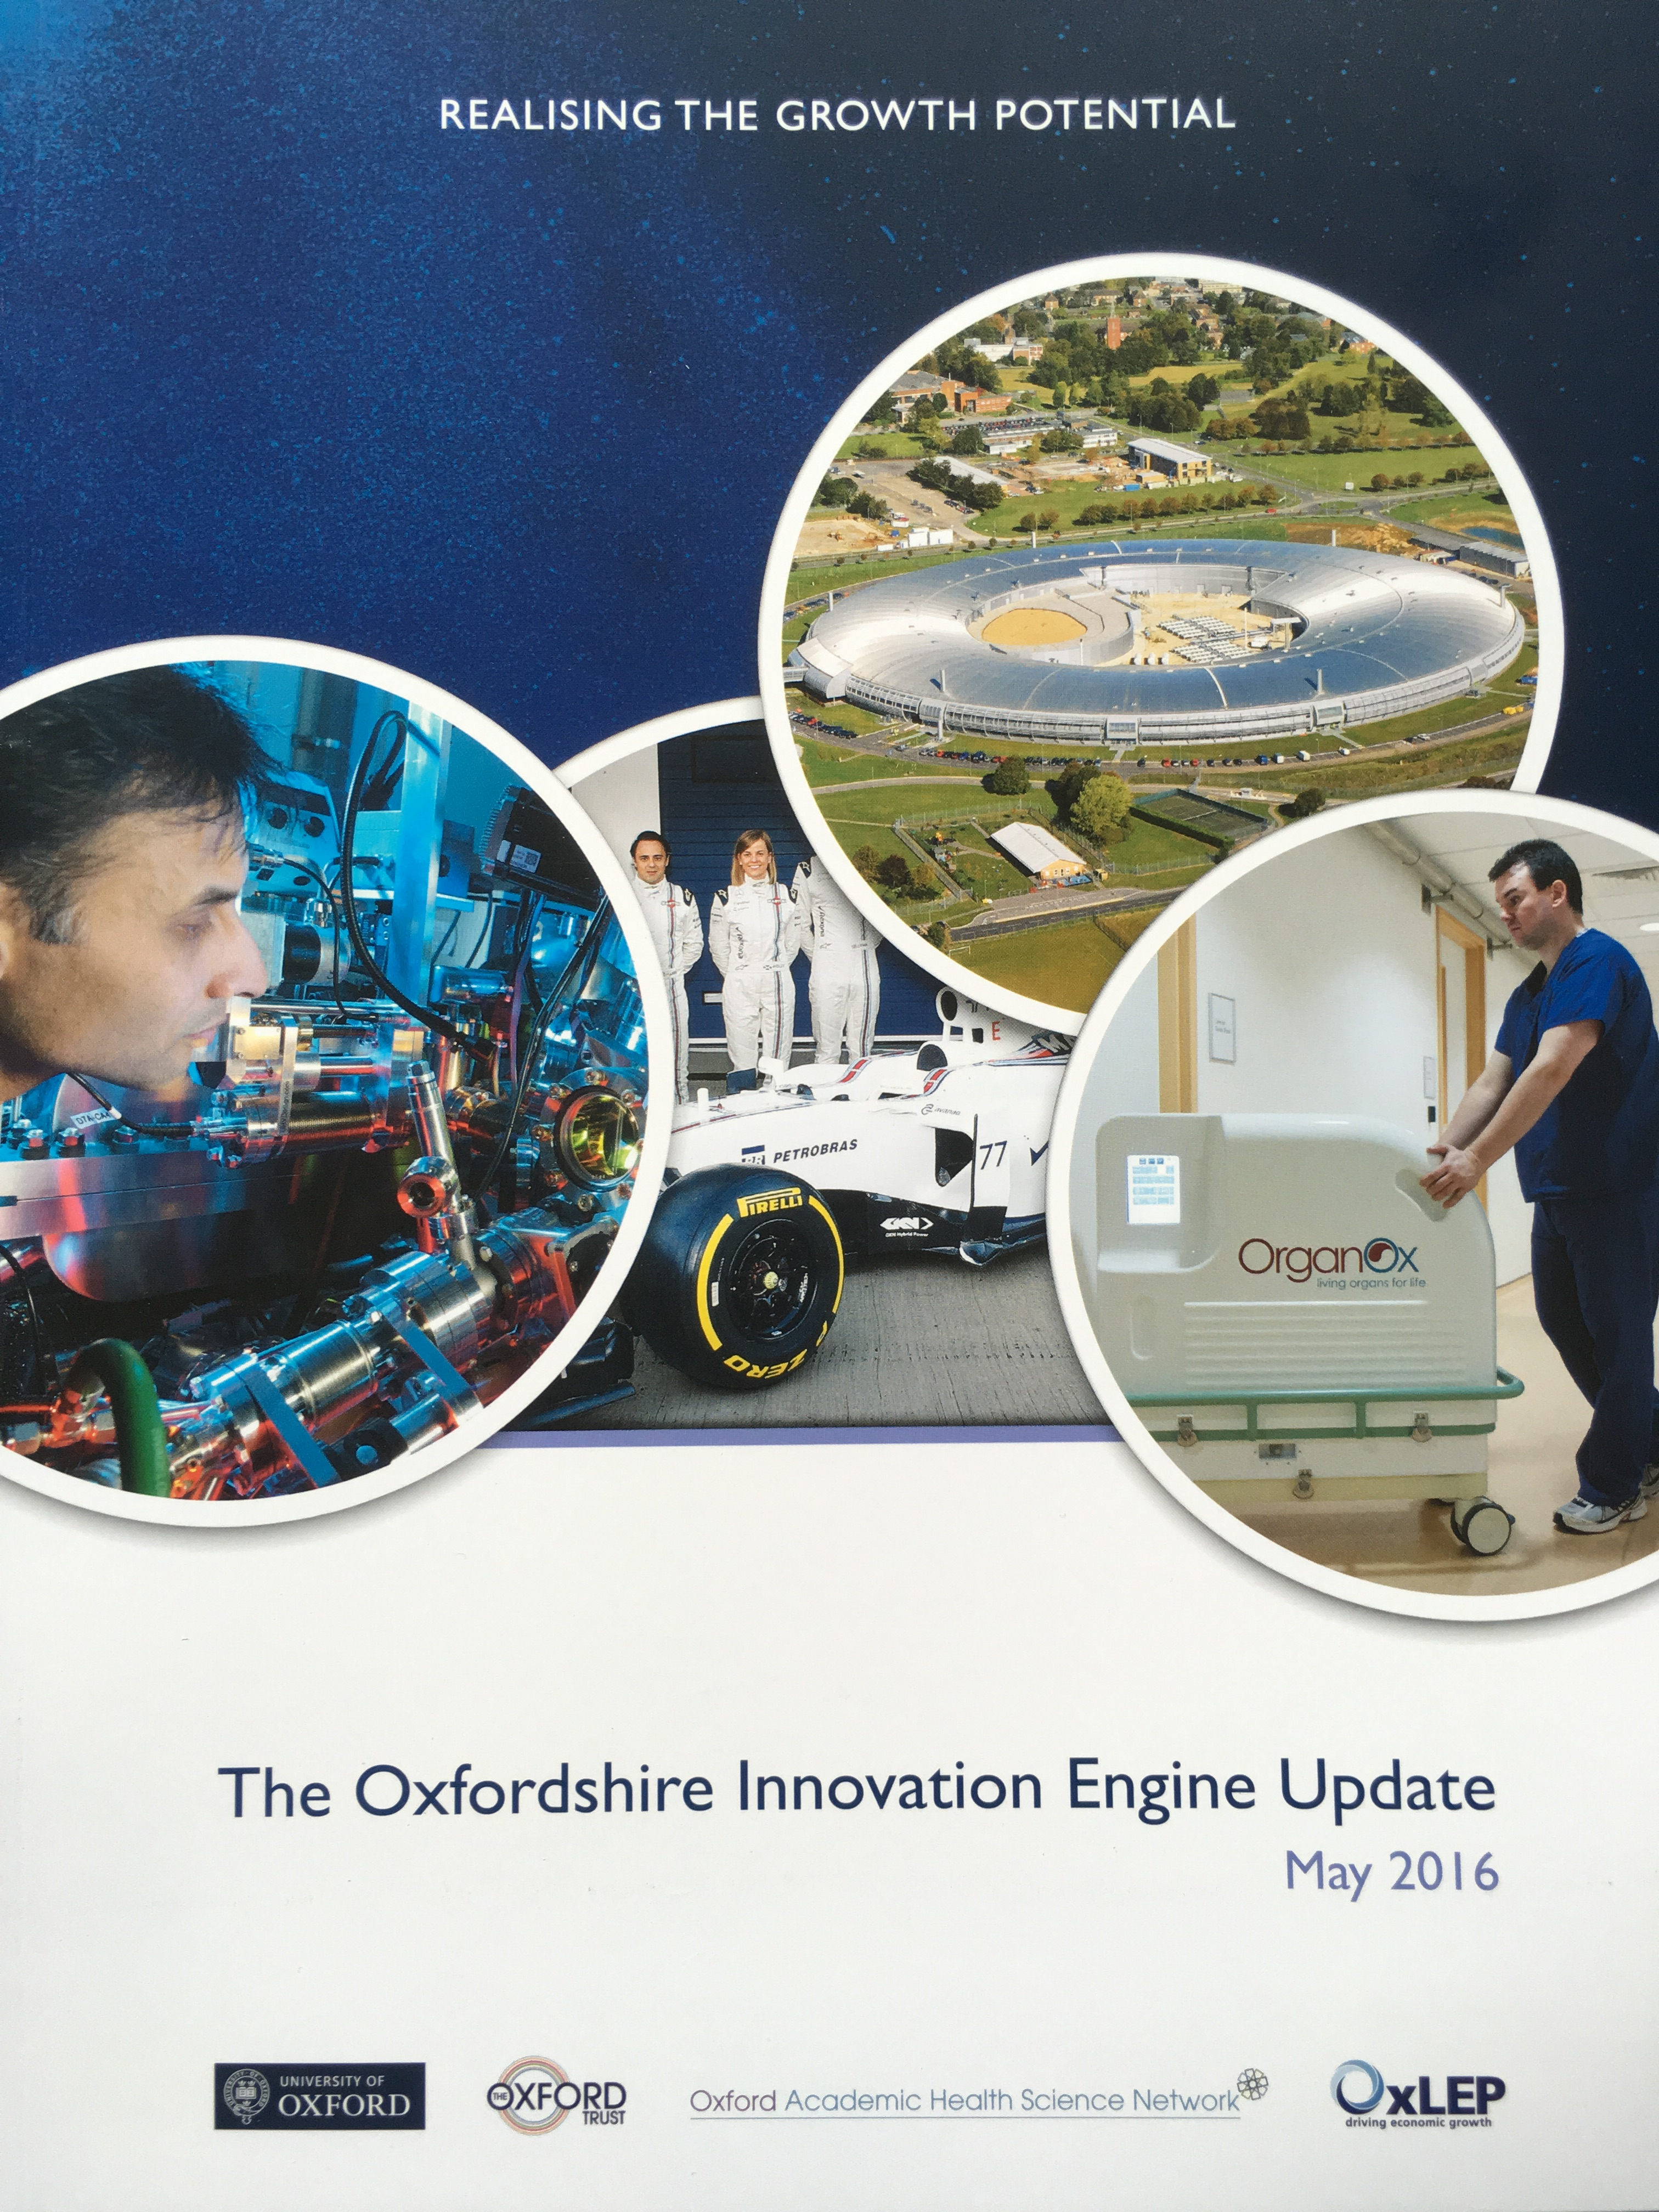 Oxfordshire Innovation Engine Update report